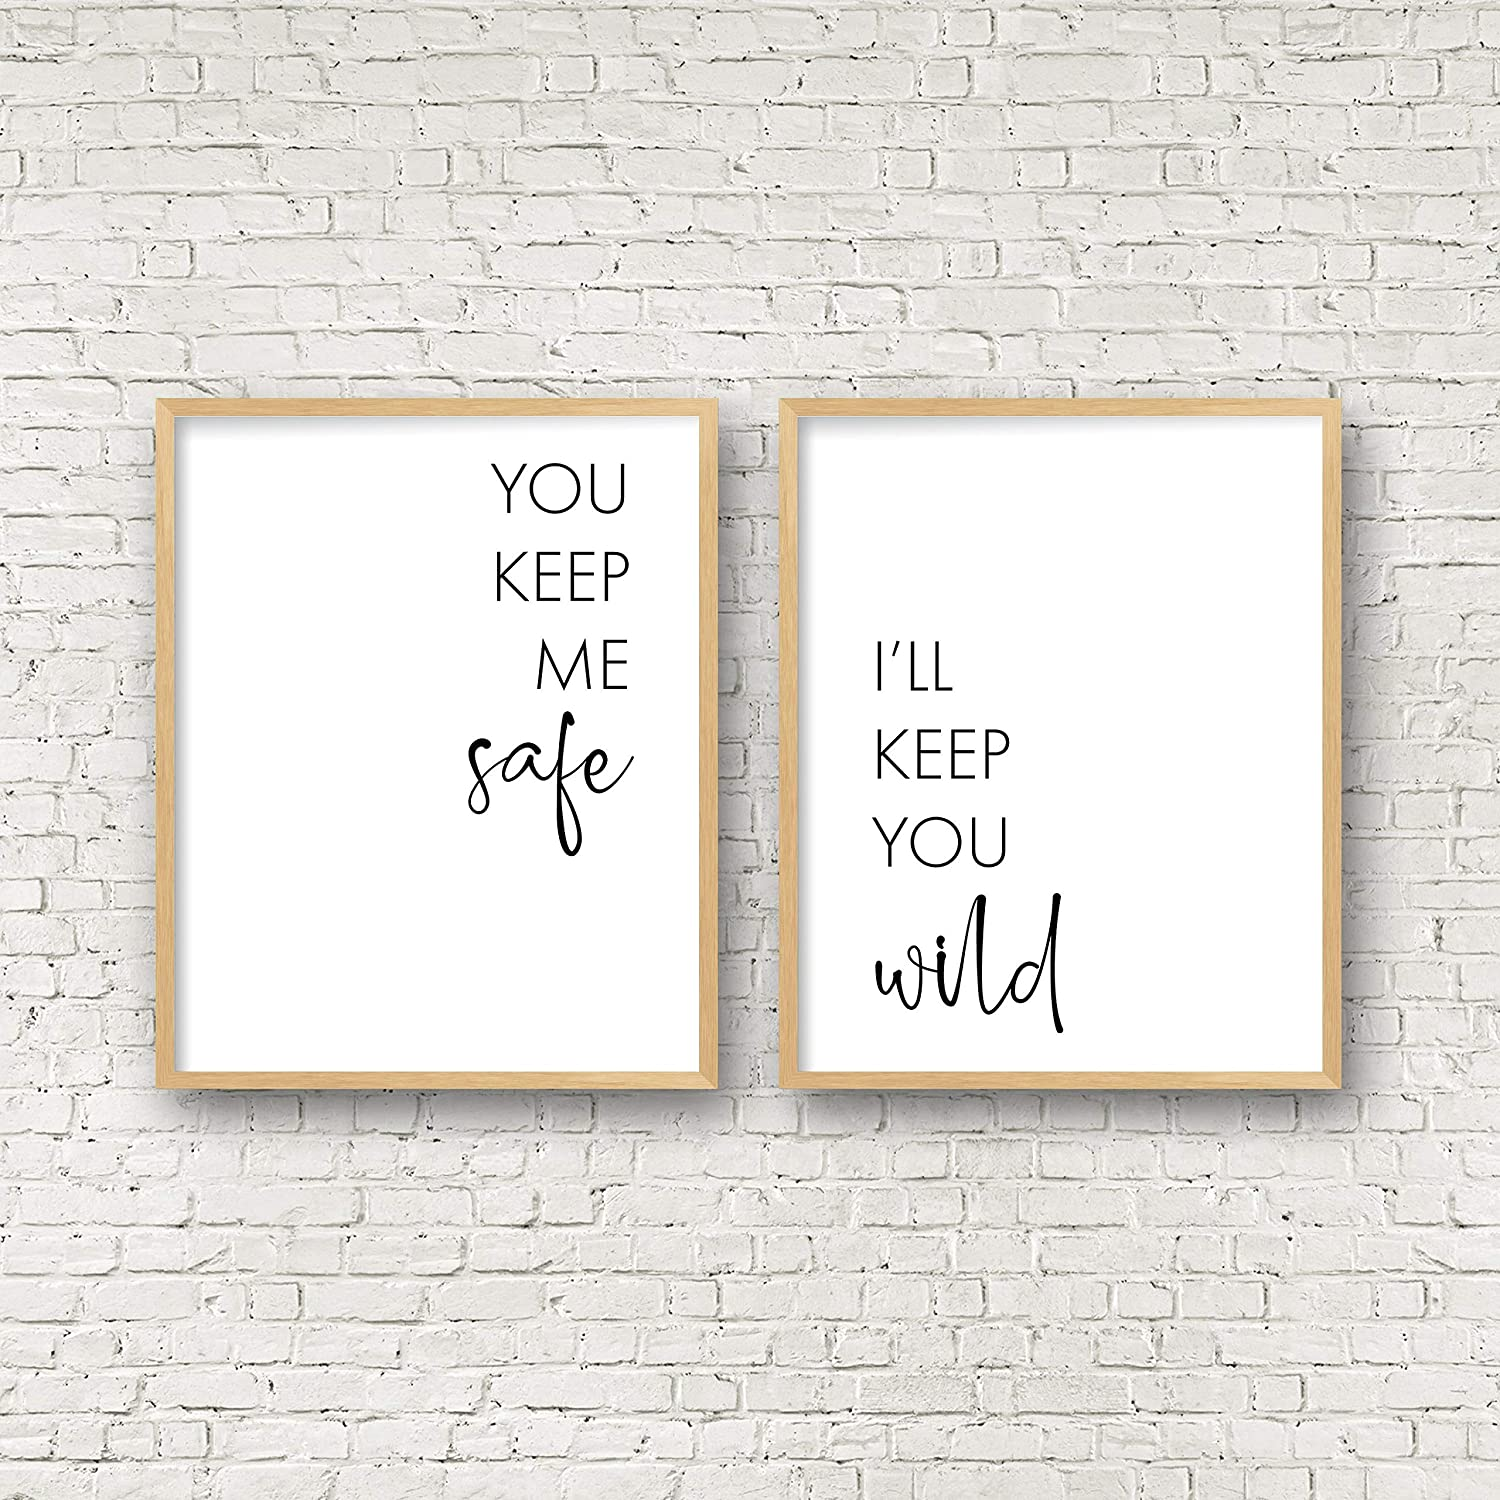 Amazon Com You Keep Me Safe I Ll Keep You Wild Above Bed Wall Art Bedroom Quote Wall Art Valentines Day Decor Wedding Gift Couple Printable Wall Artset Of 2 Wood Pallet Design Sign